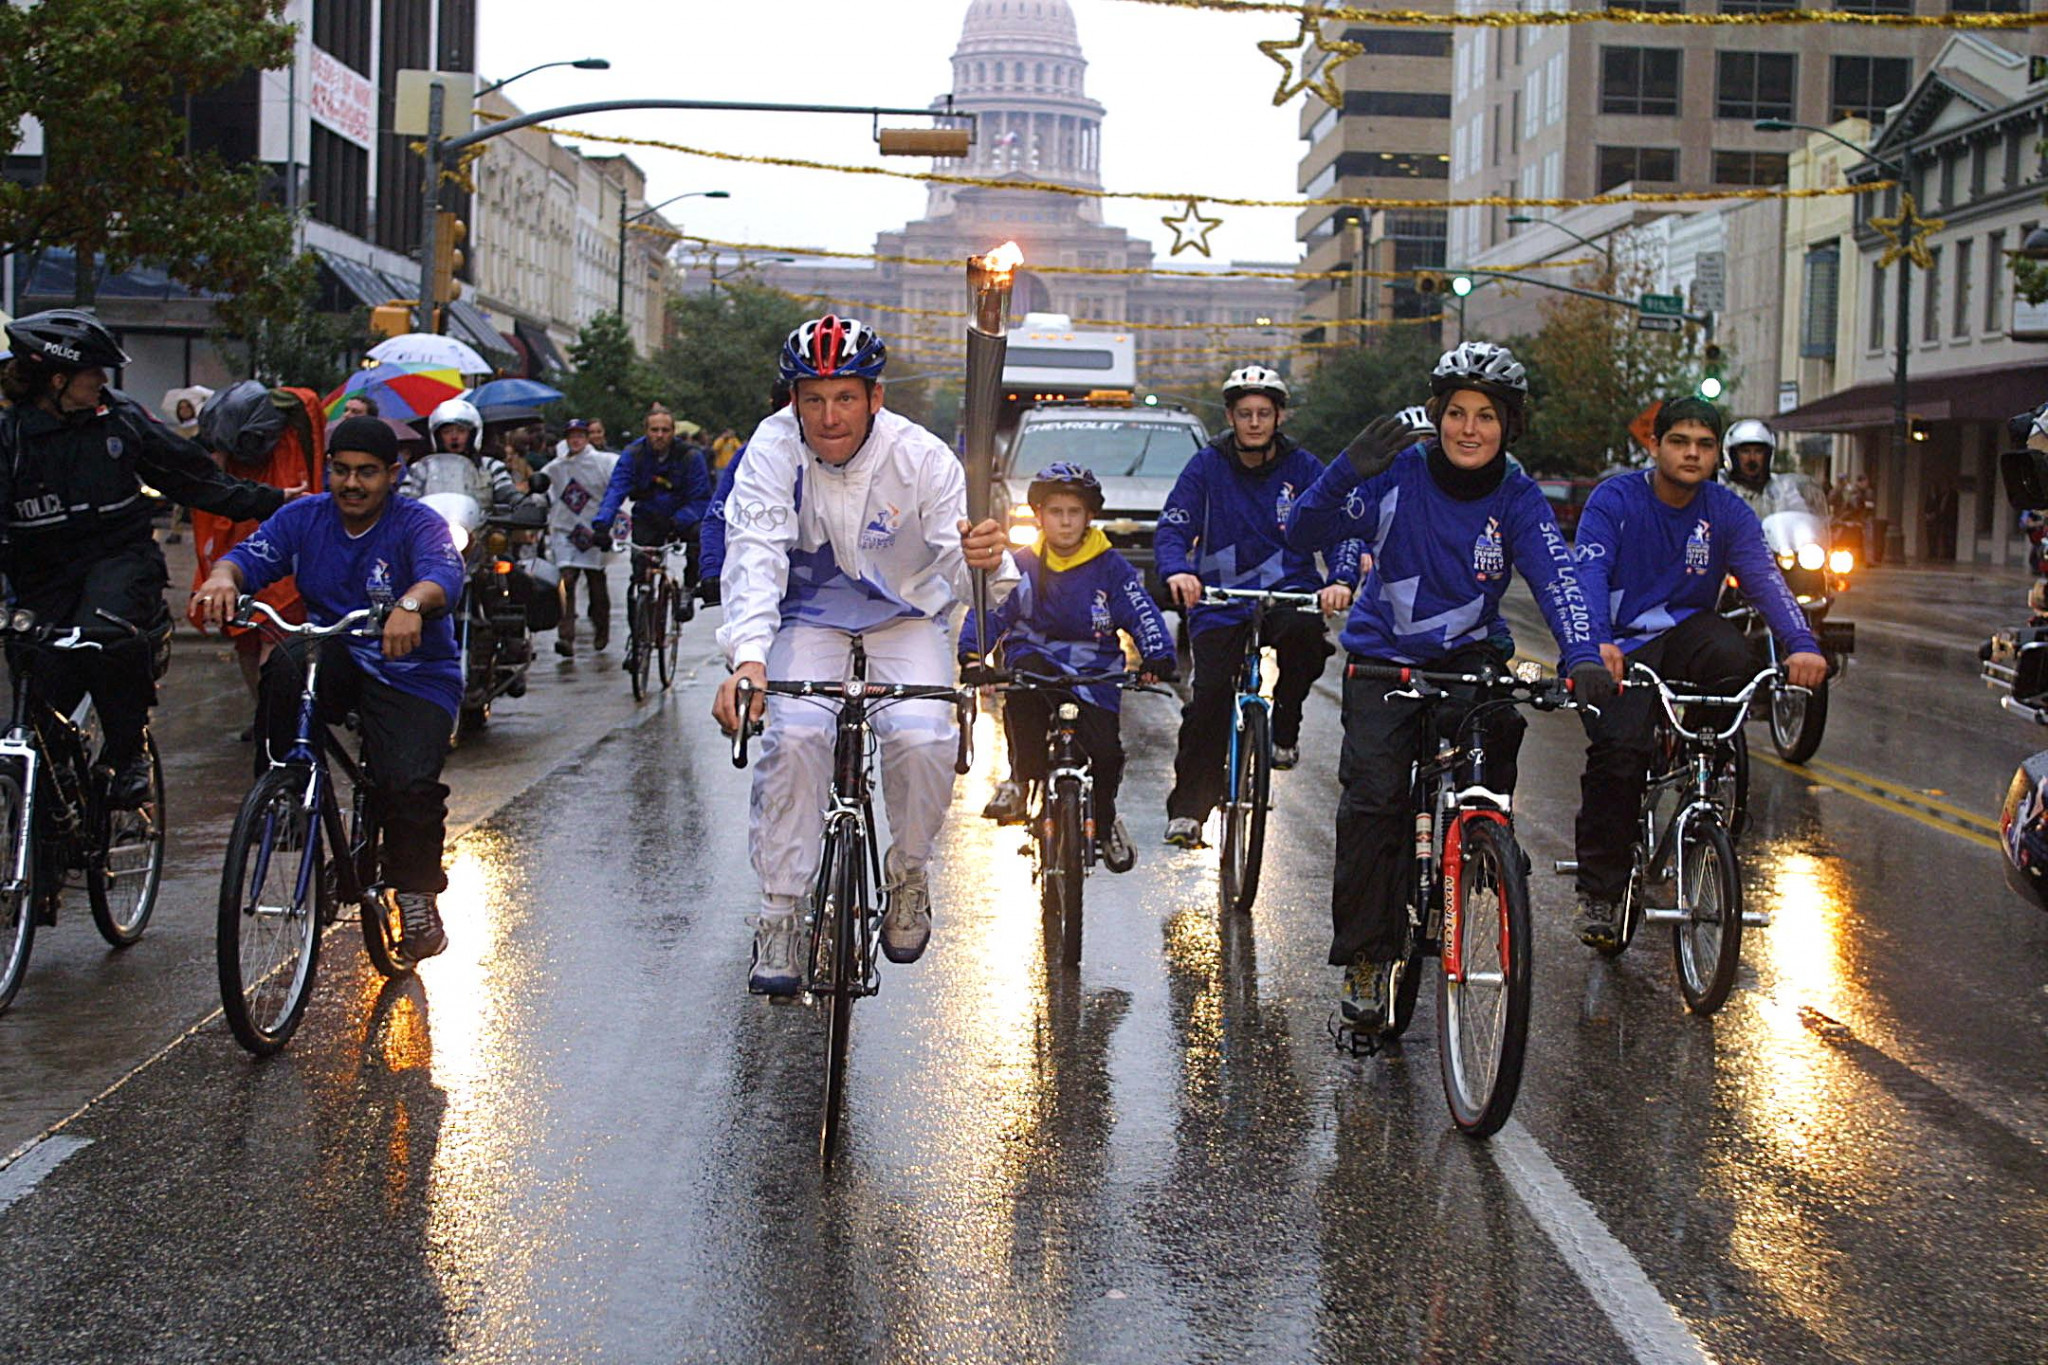 Lance Armstrong carried the Olympic Torch before Salt Lake City 2002 ©Getty Images